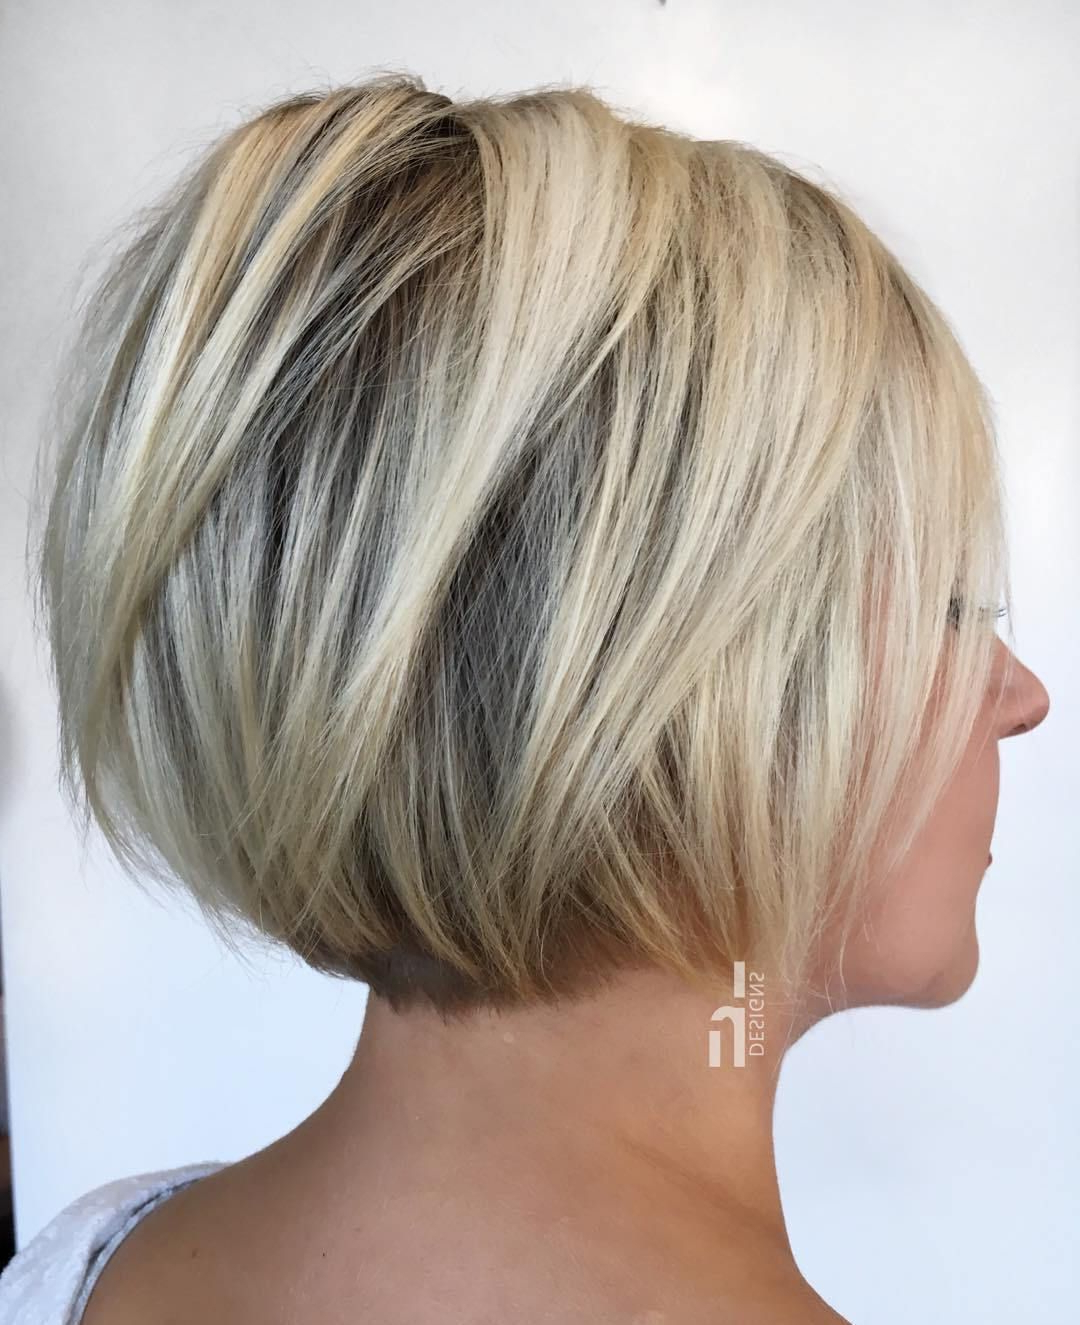 90 Classy And Simple Short Hairstyles For Women Over 50 | My Bob Fav With Regard To Messy Pixie Haircuts With V Cut Layers (View 5 of 20)